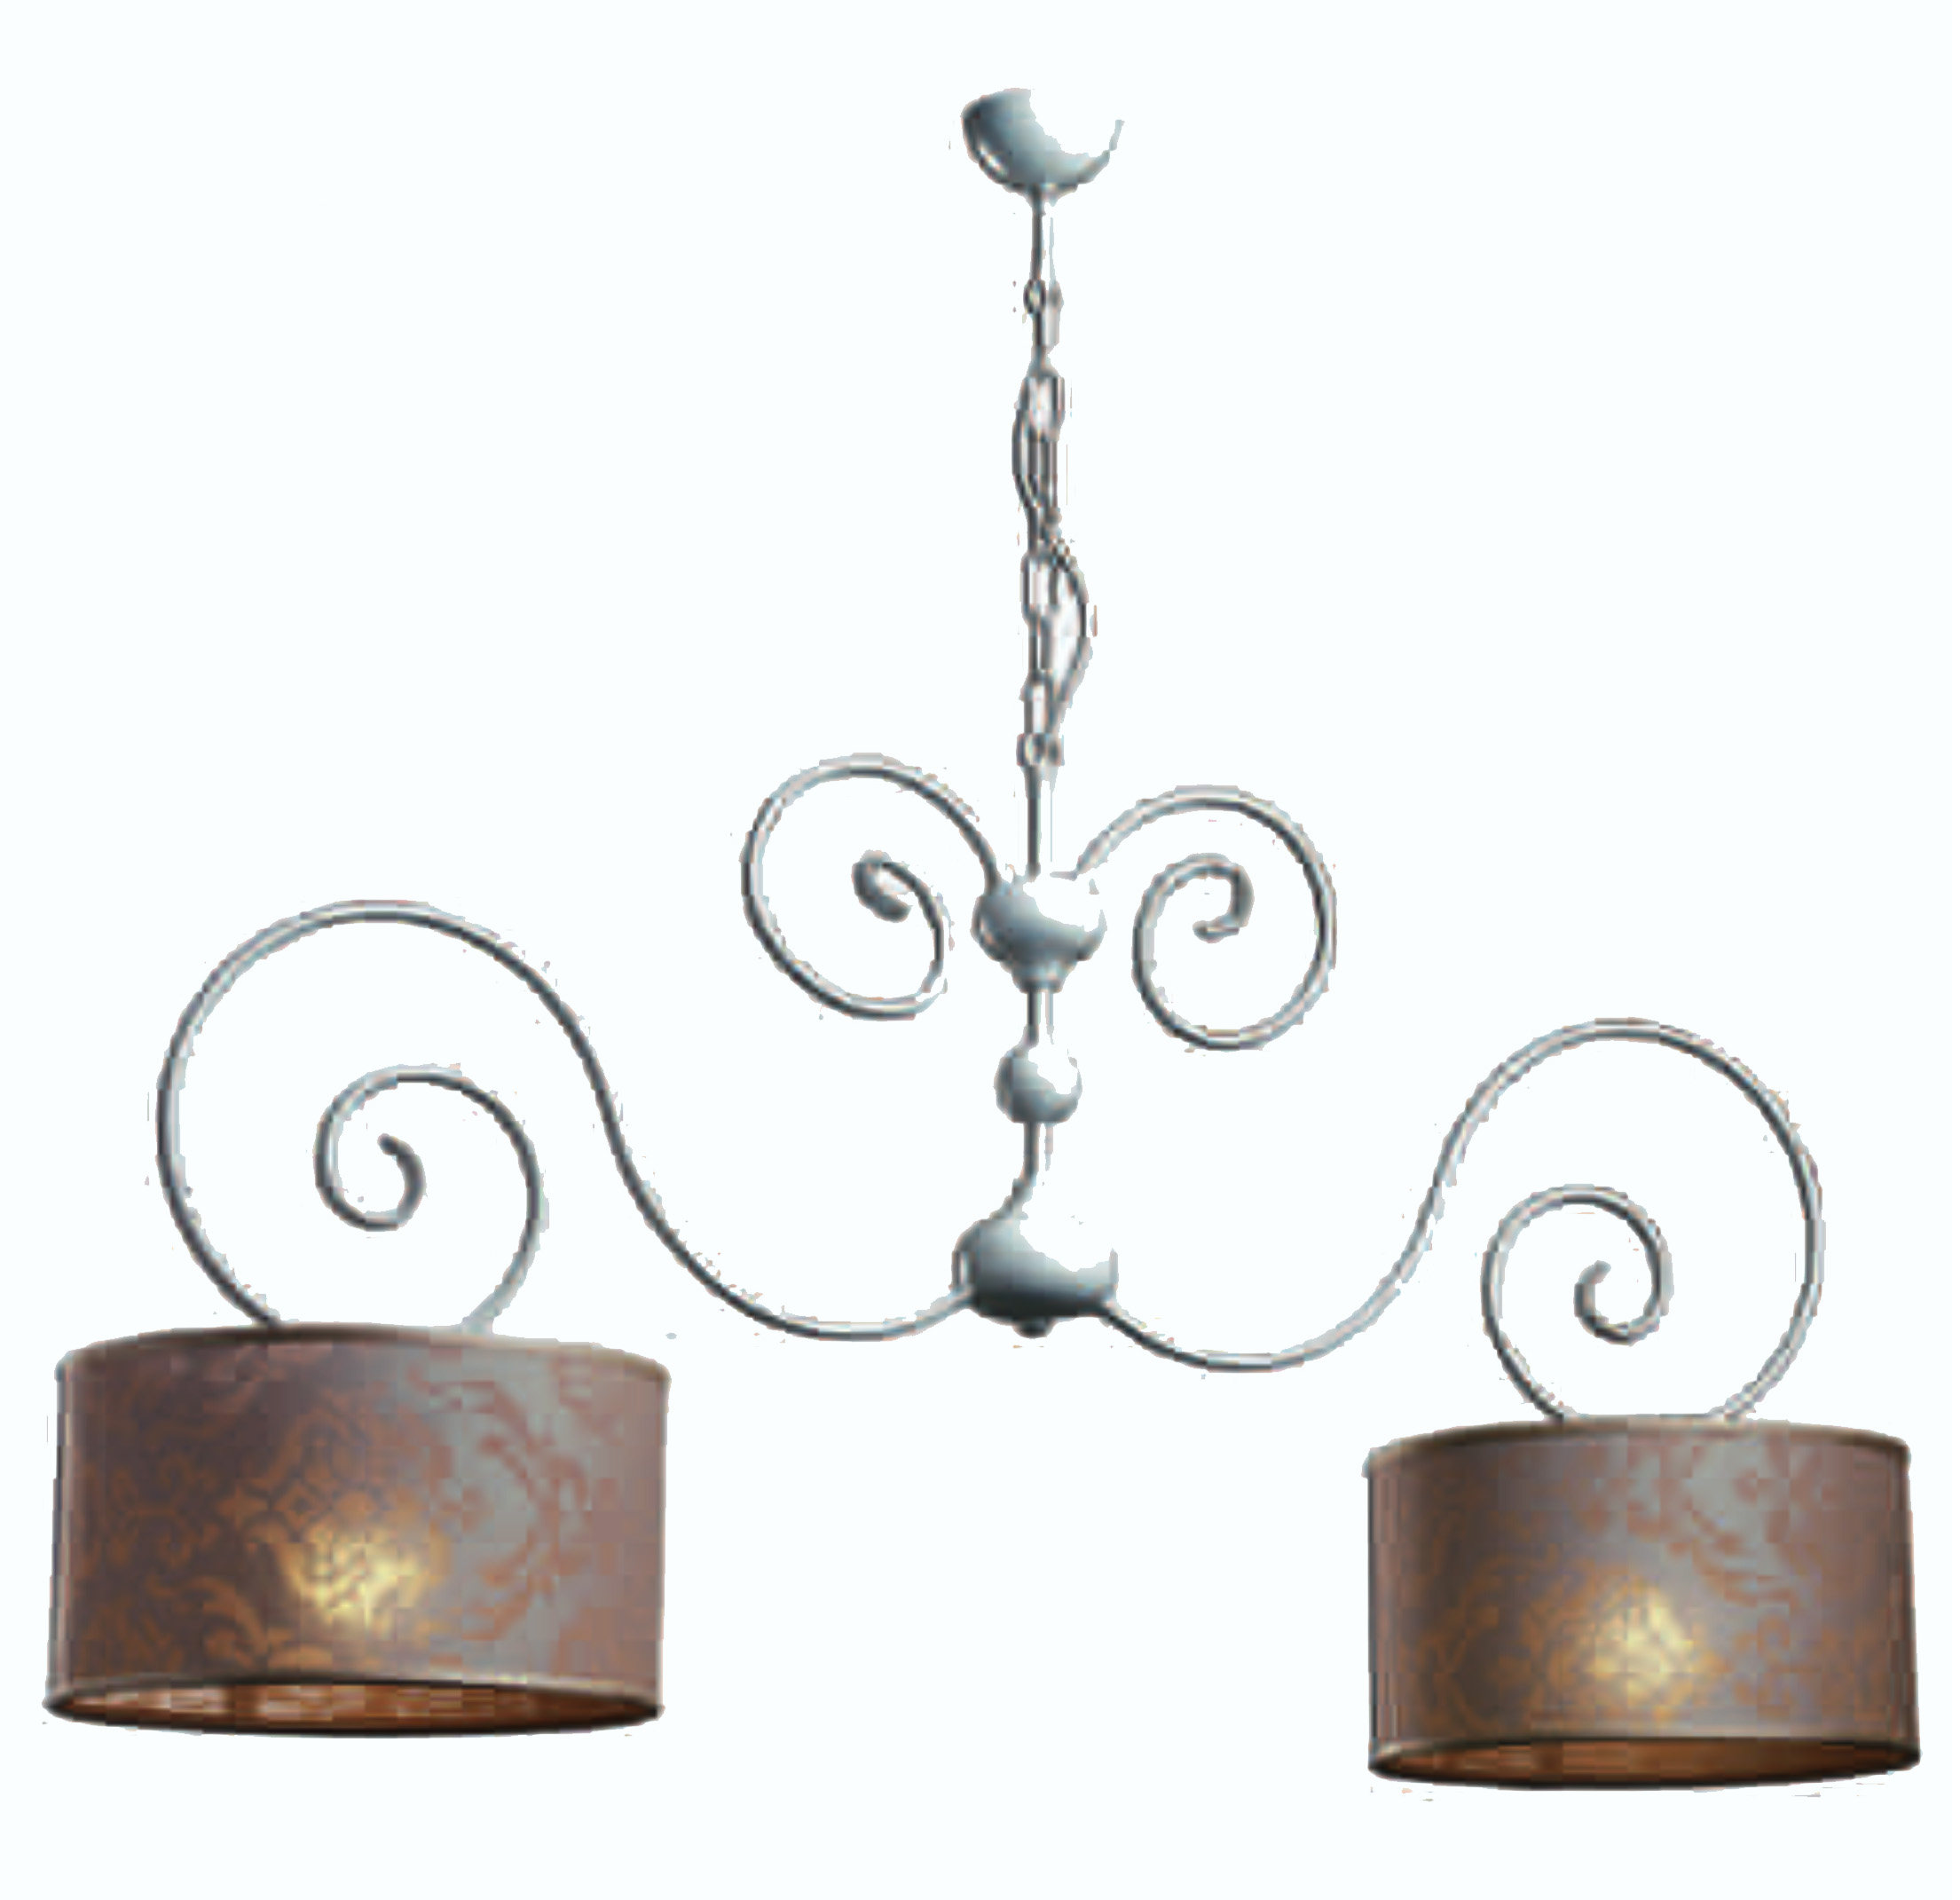 Notali bilanciere shabby chic 2 for Lampade shabby chic online